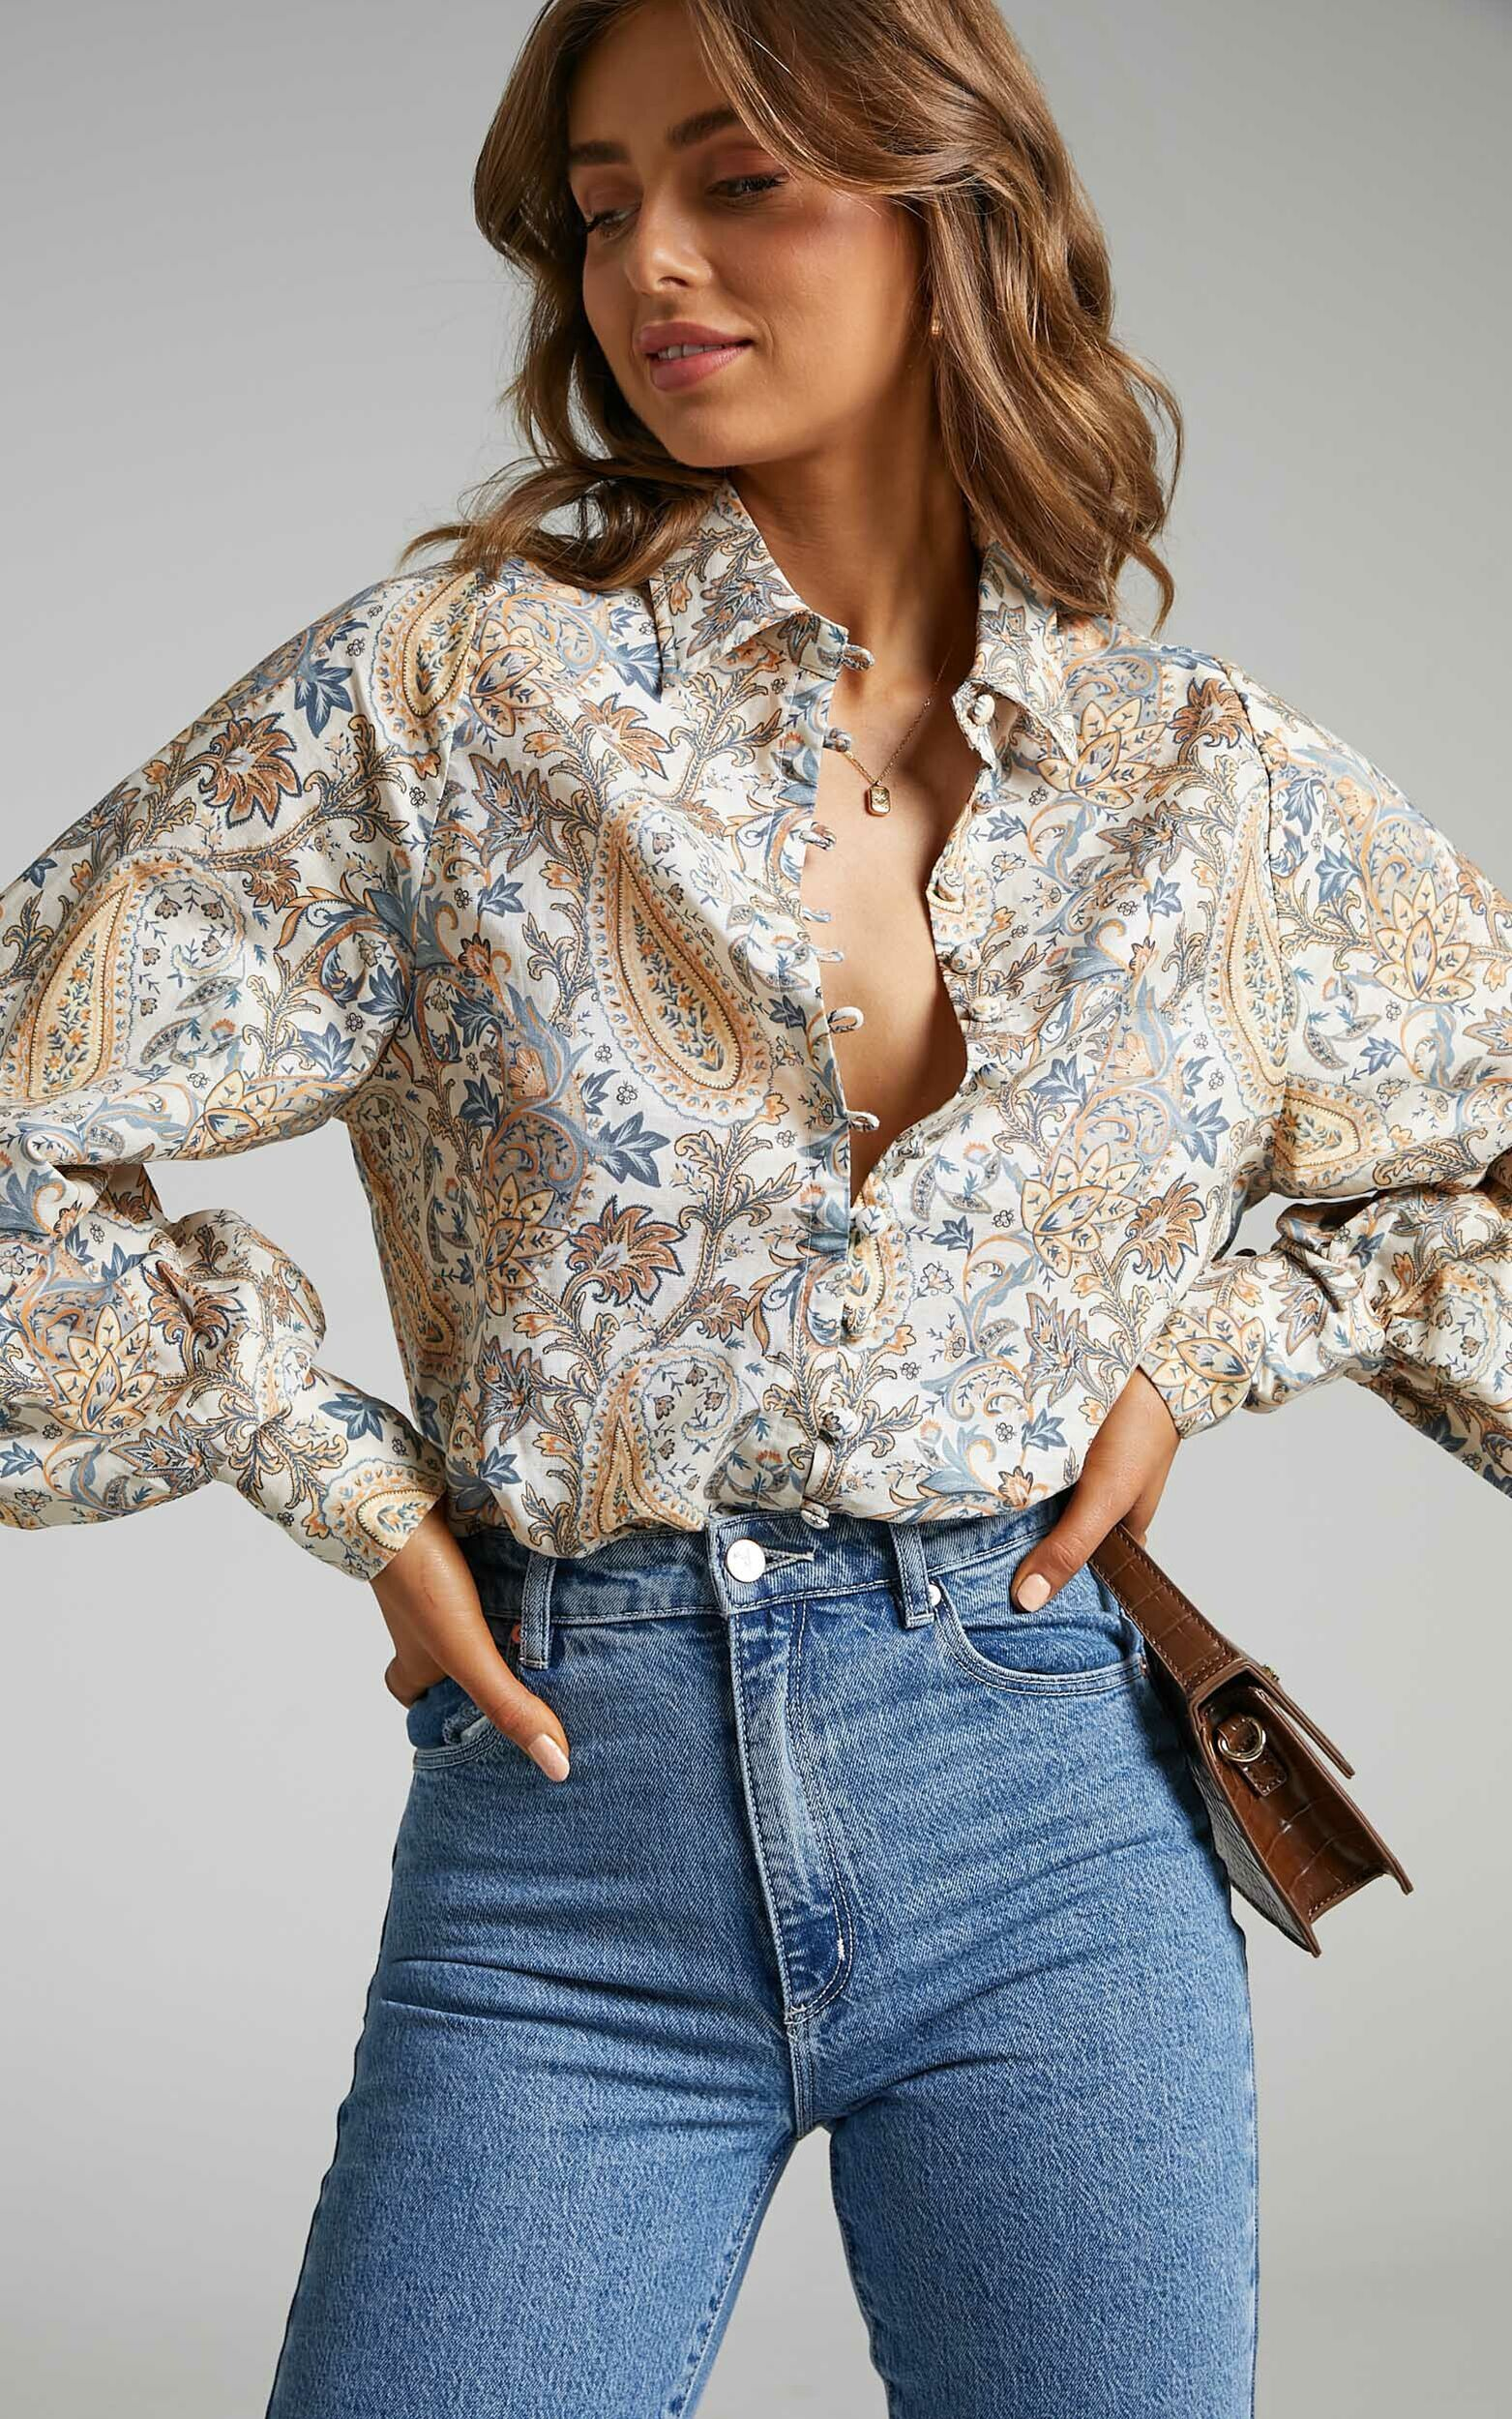 Charlie Holiday - Harmony Shirt in Paisley - L, MLT1, super-hi-res image number null